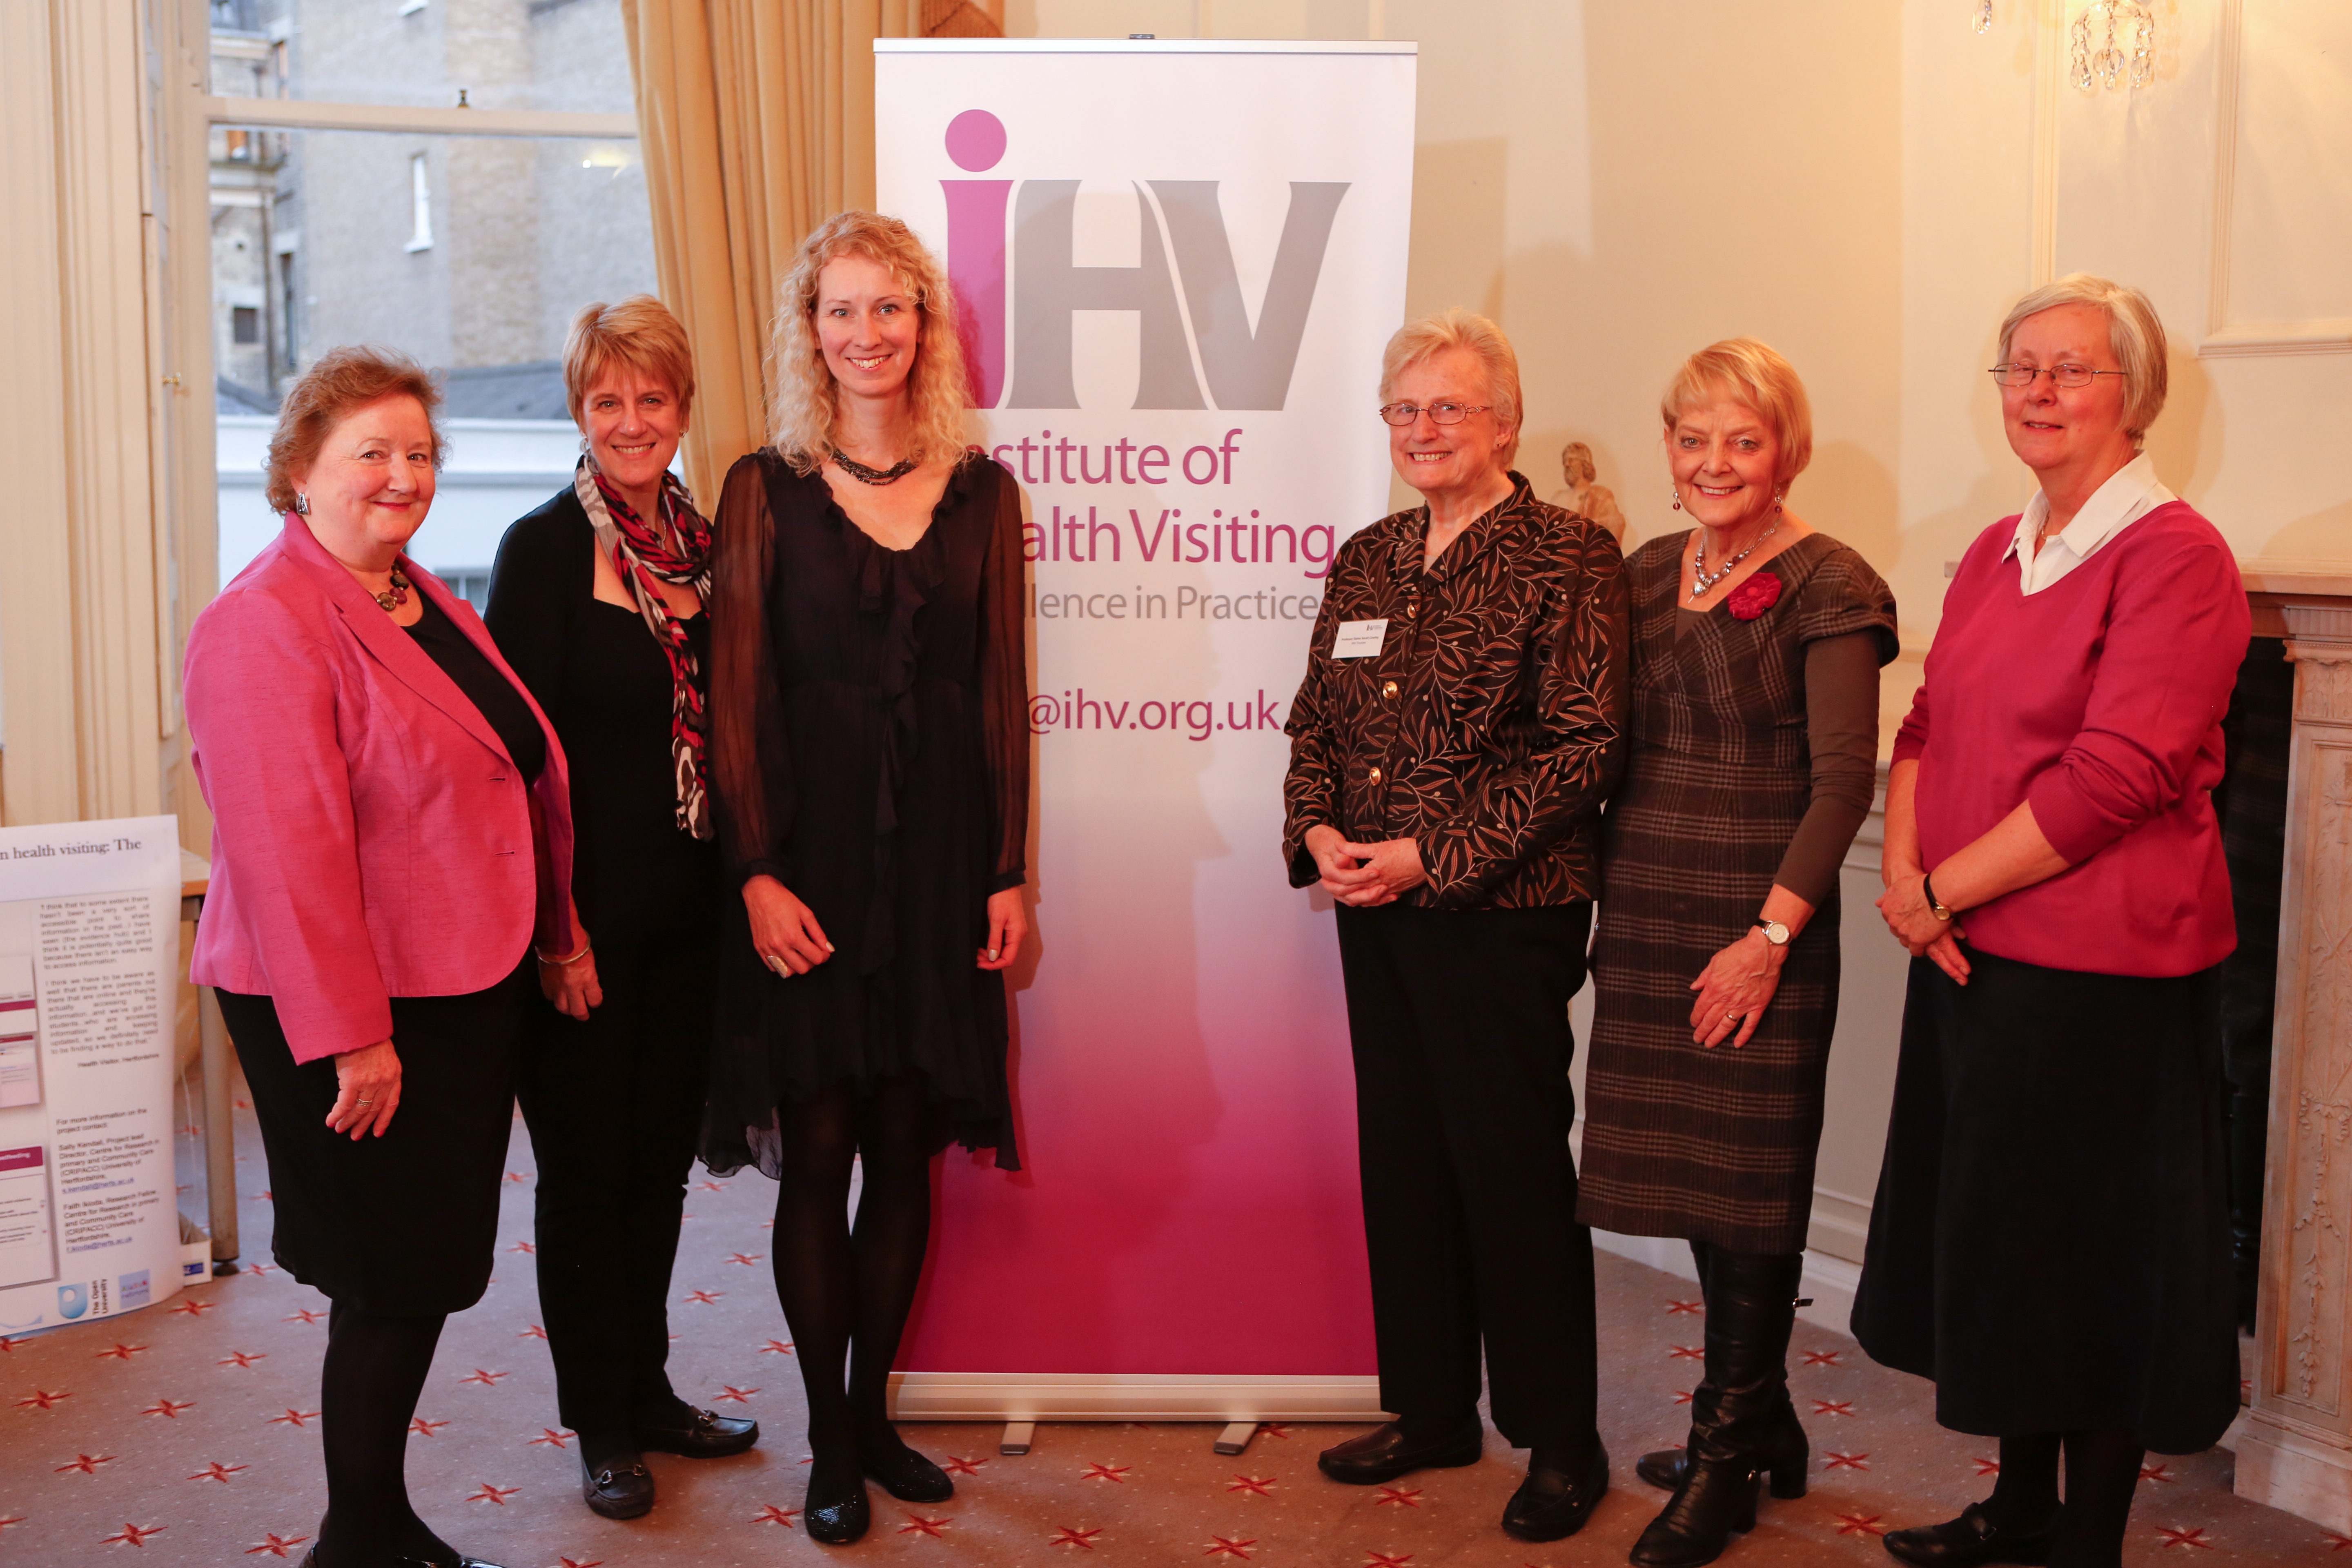 iHV trustees at Event